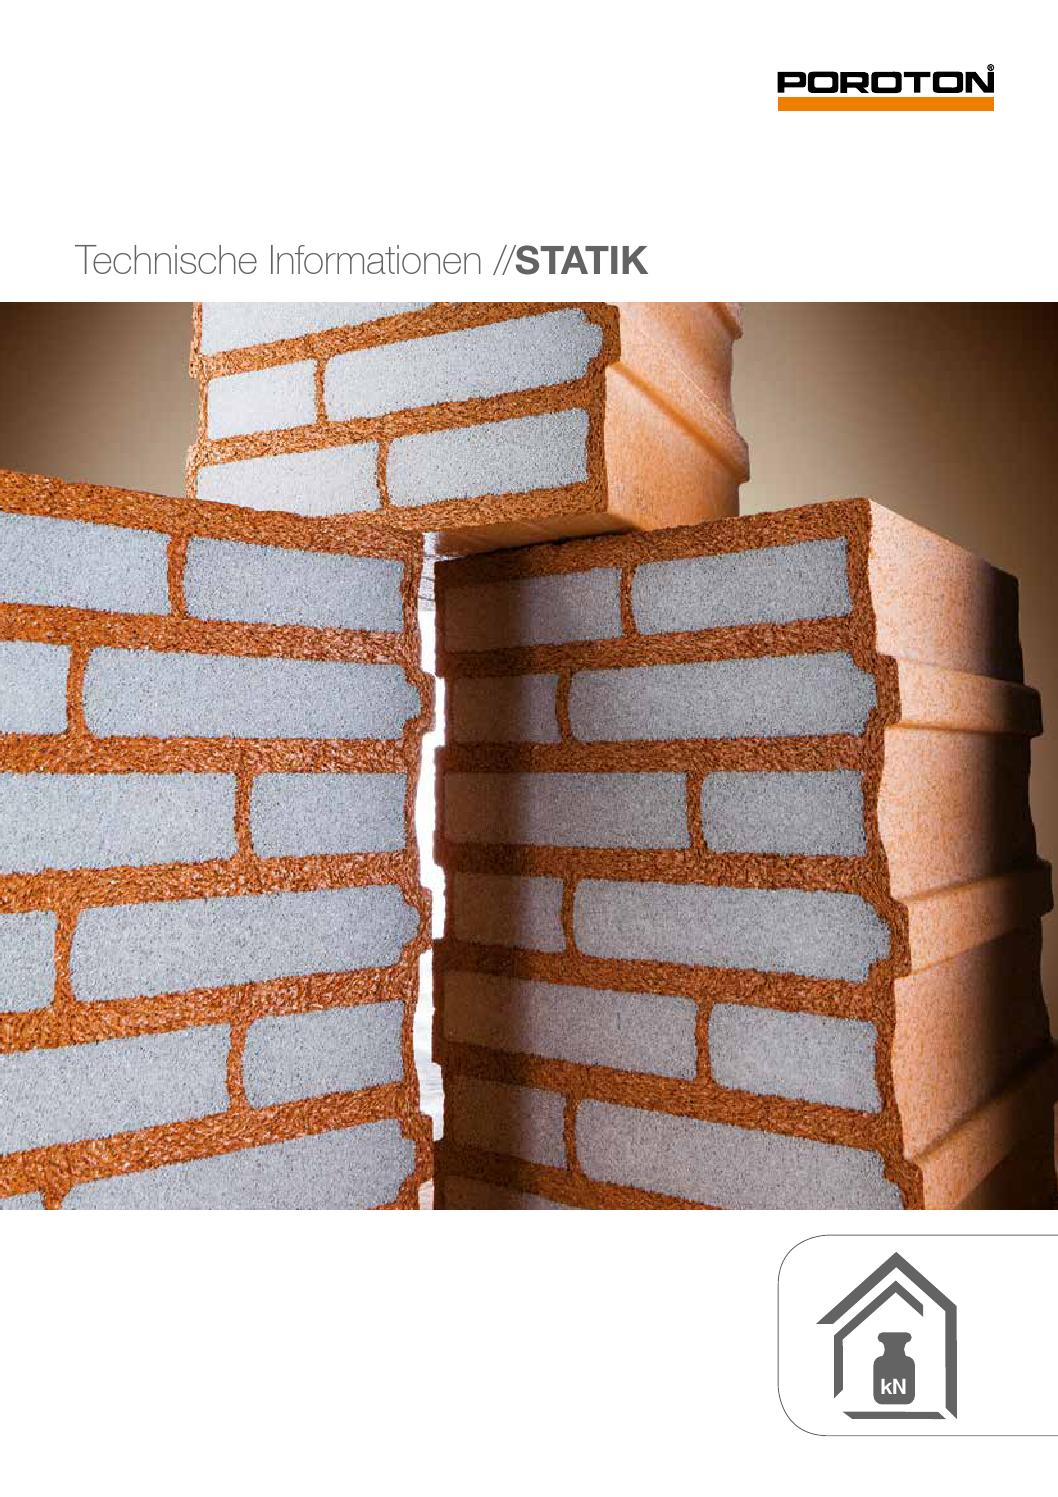 POROTON: Technische Informationen STATIK by Wienerberger AG - issuu